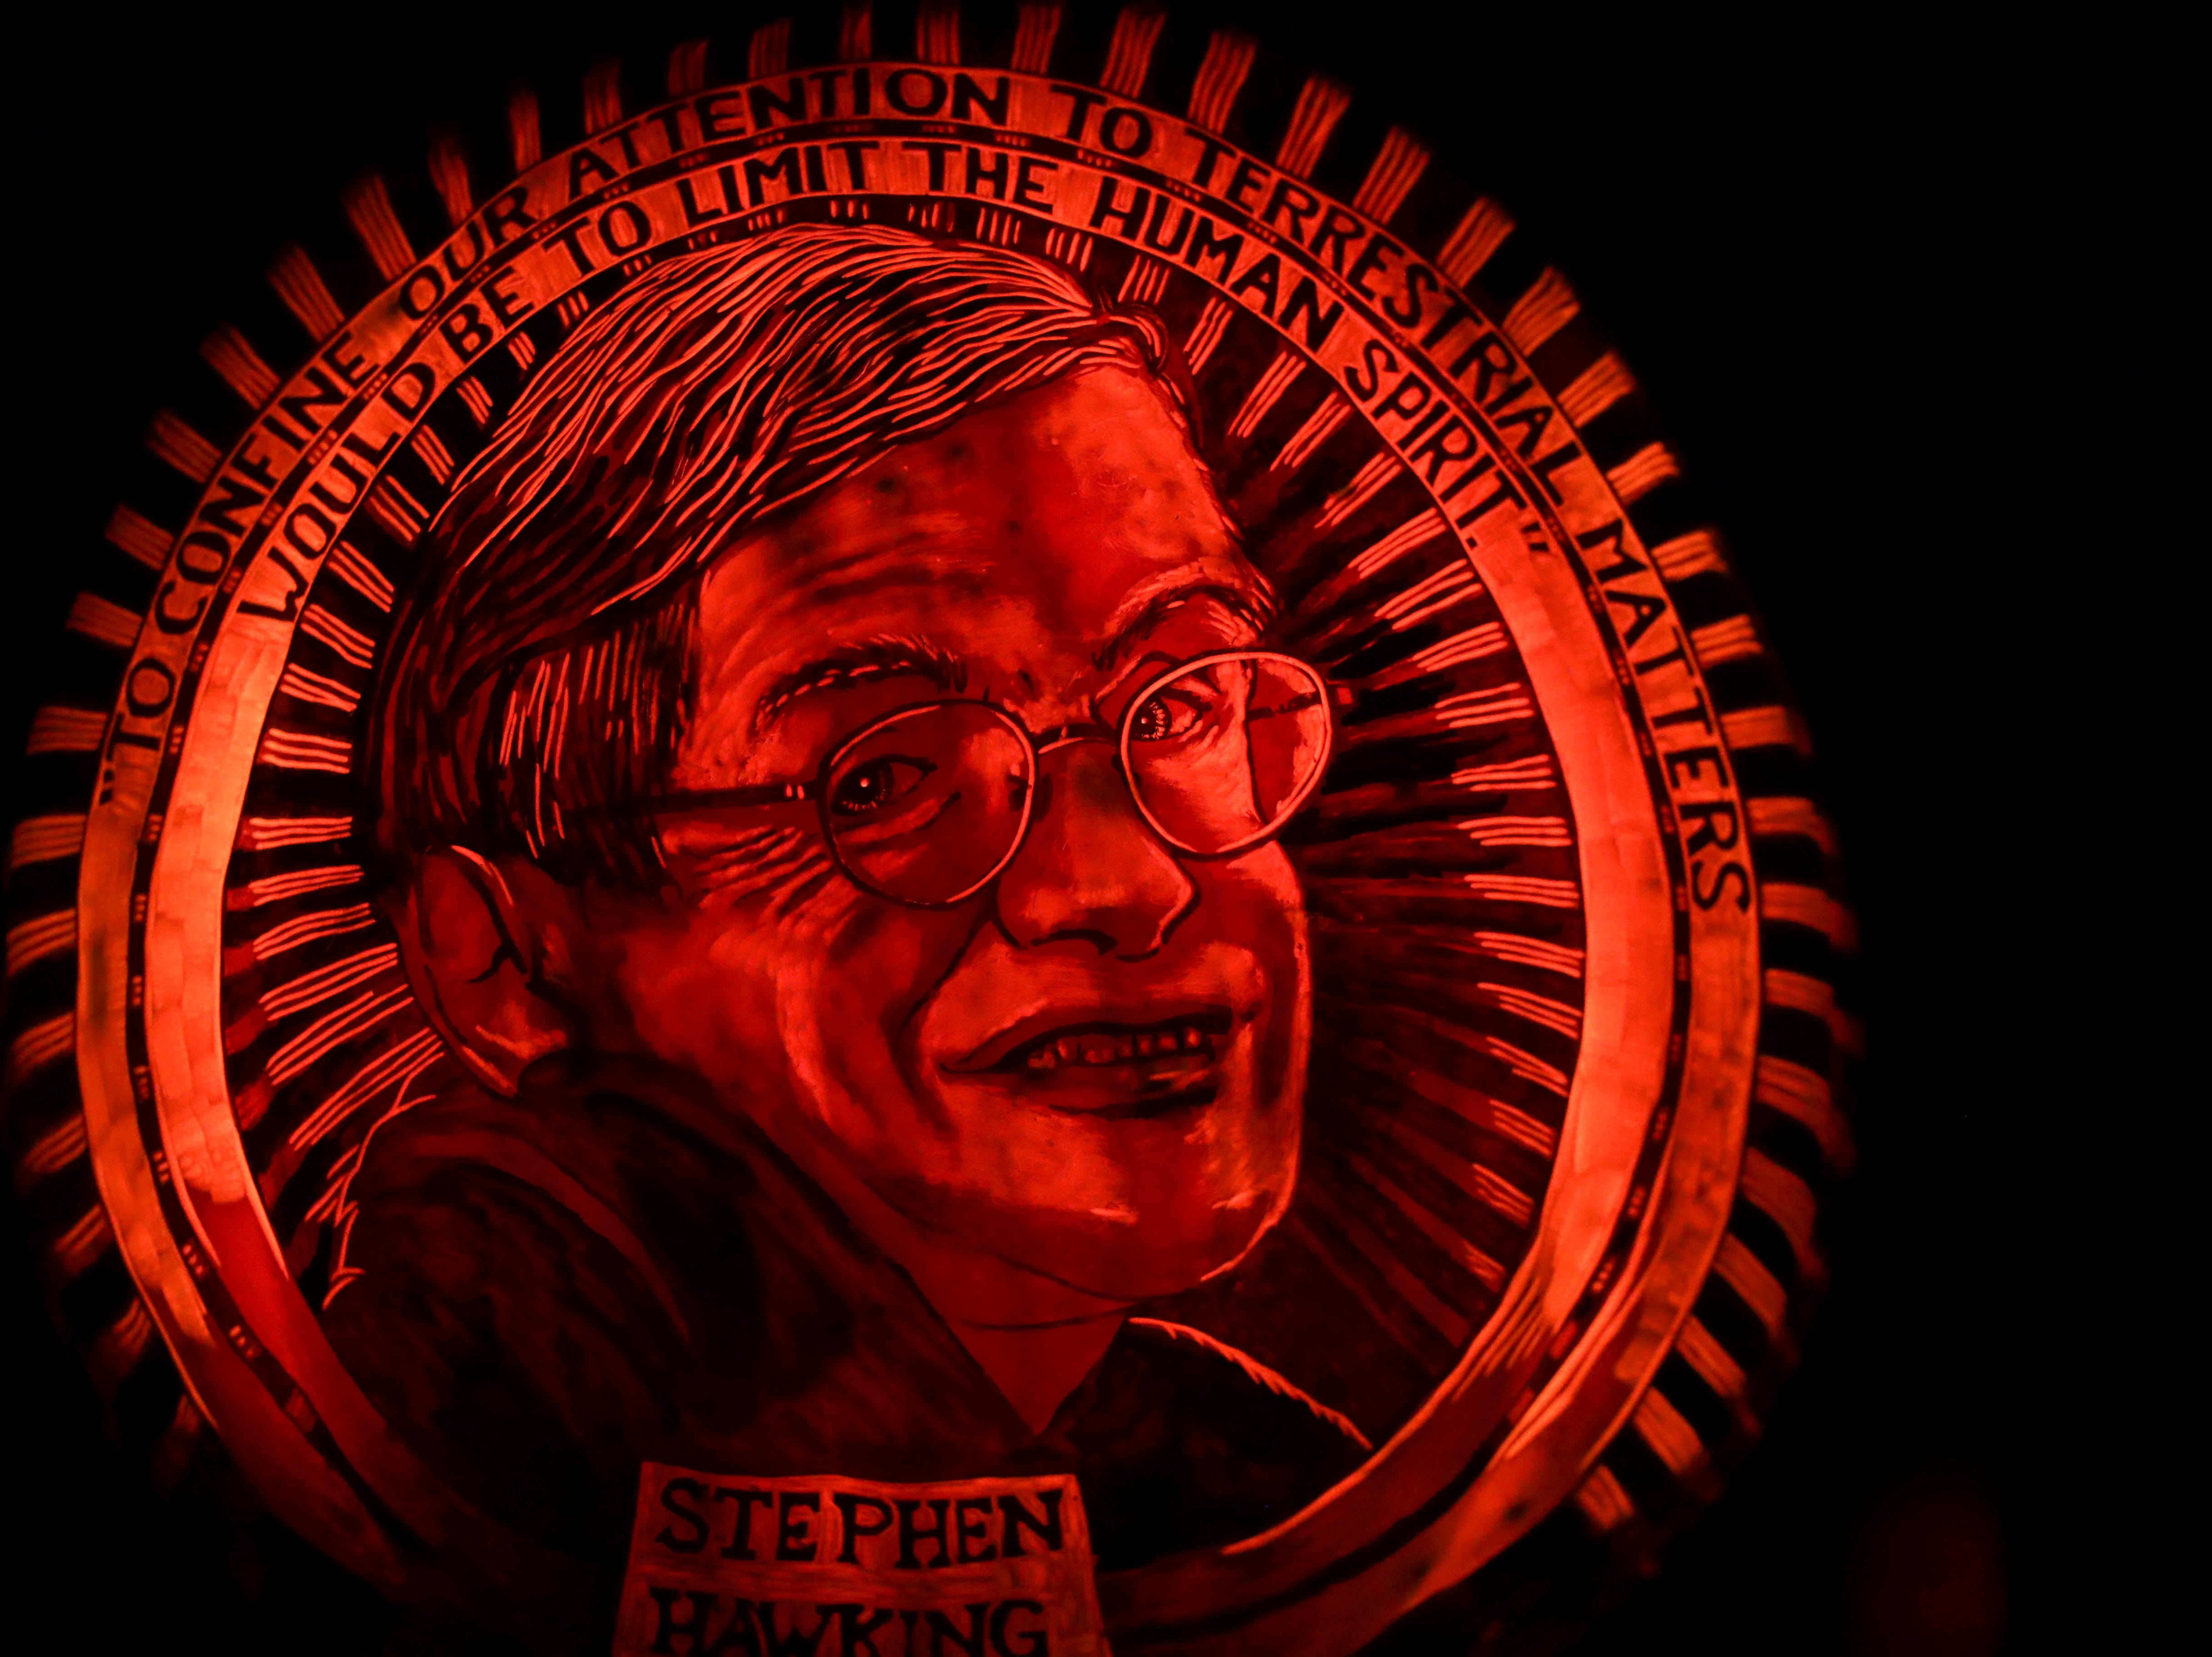 Stephen Hawking appears on a pumpkin at this year's Jack O' Lantern Spectacular. Oct. 9, 2018